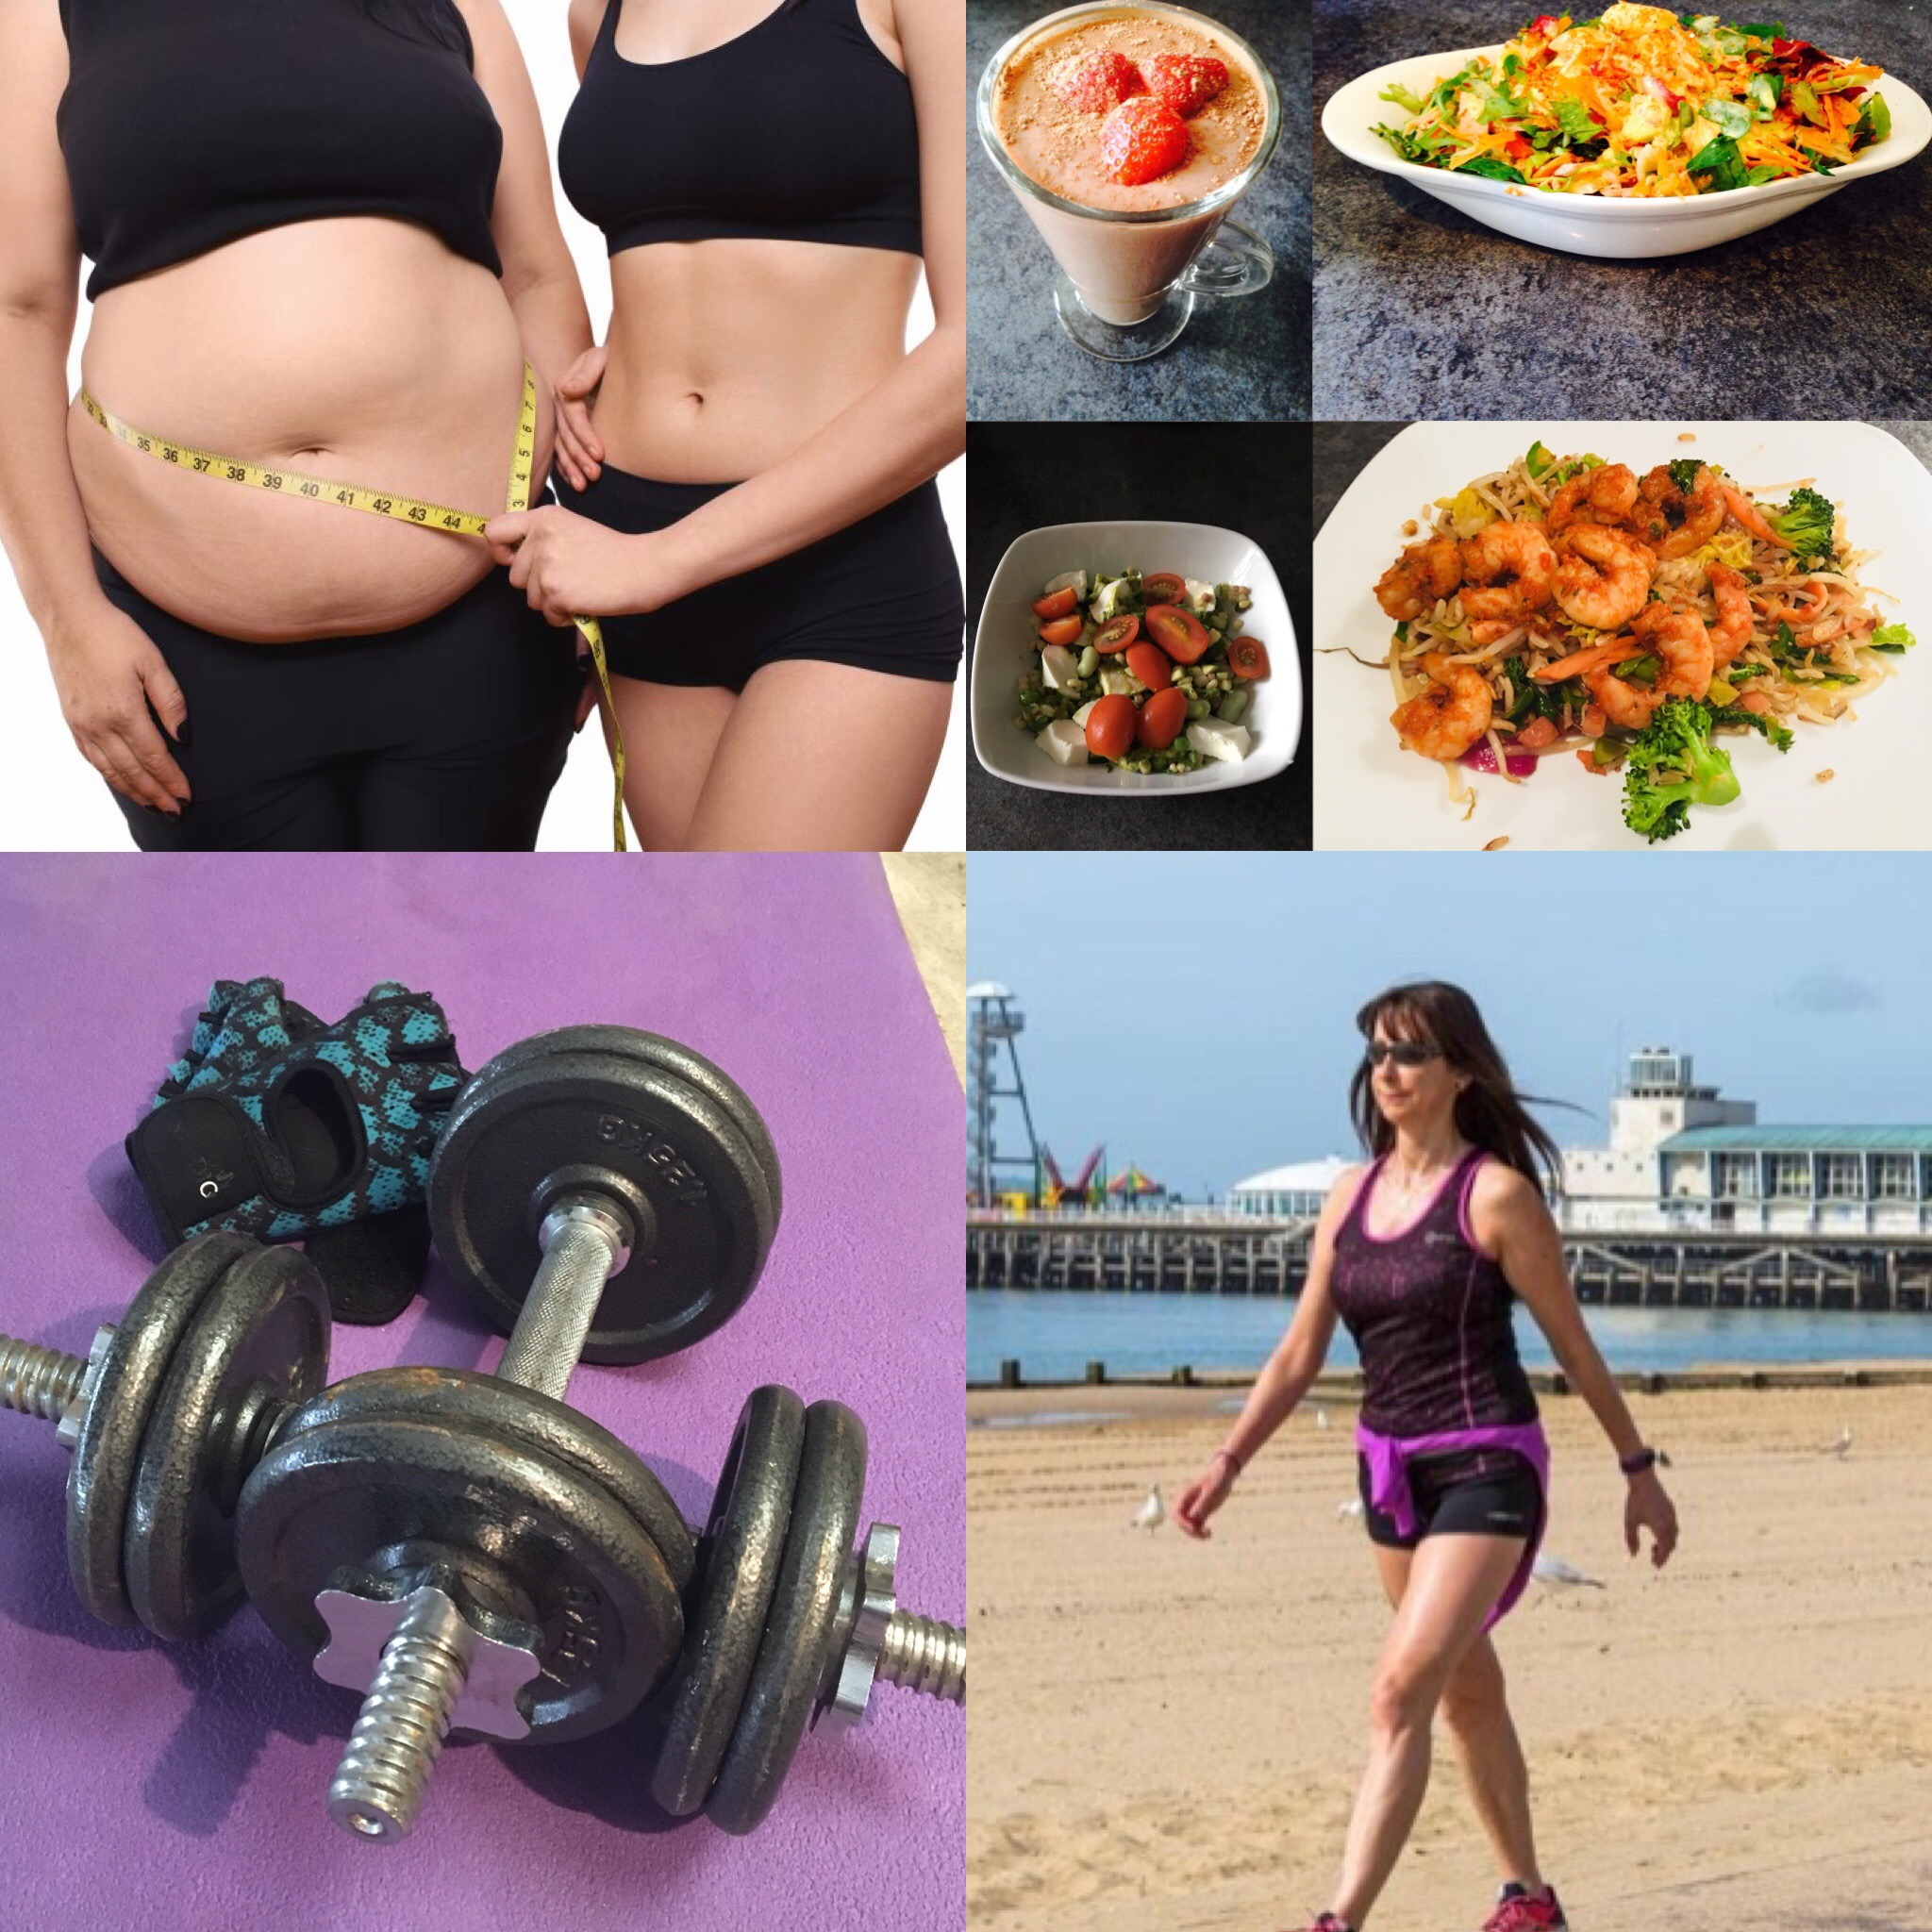 healthy diet and regular exercise can improve A healthy diet can improve the overall function of the circulatory system try aphrodisiac foods in addition to taking a diet that encourages blood 2 can regular exercise prevent premature ejaculation kegel exercises are designed to strengthen pelvic floor muscles and are good for men.